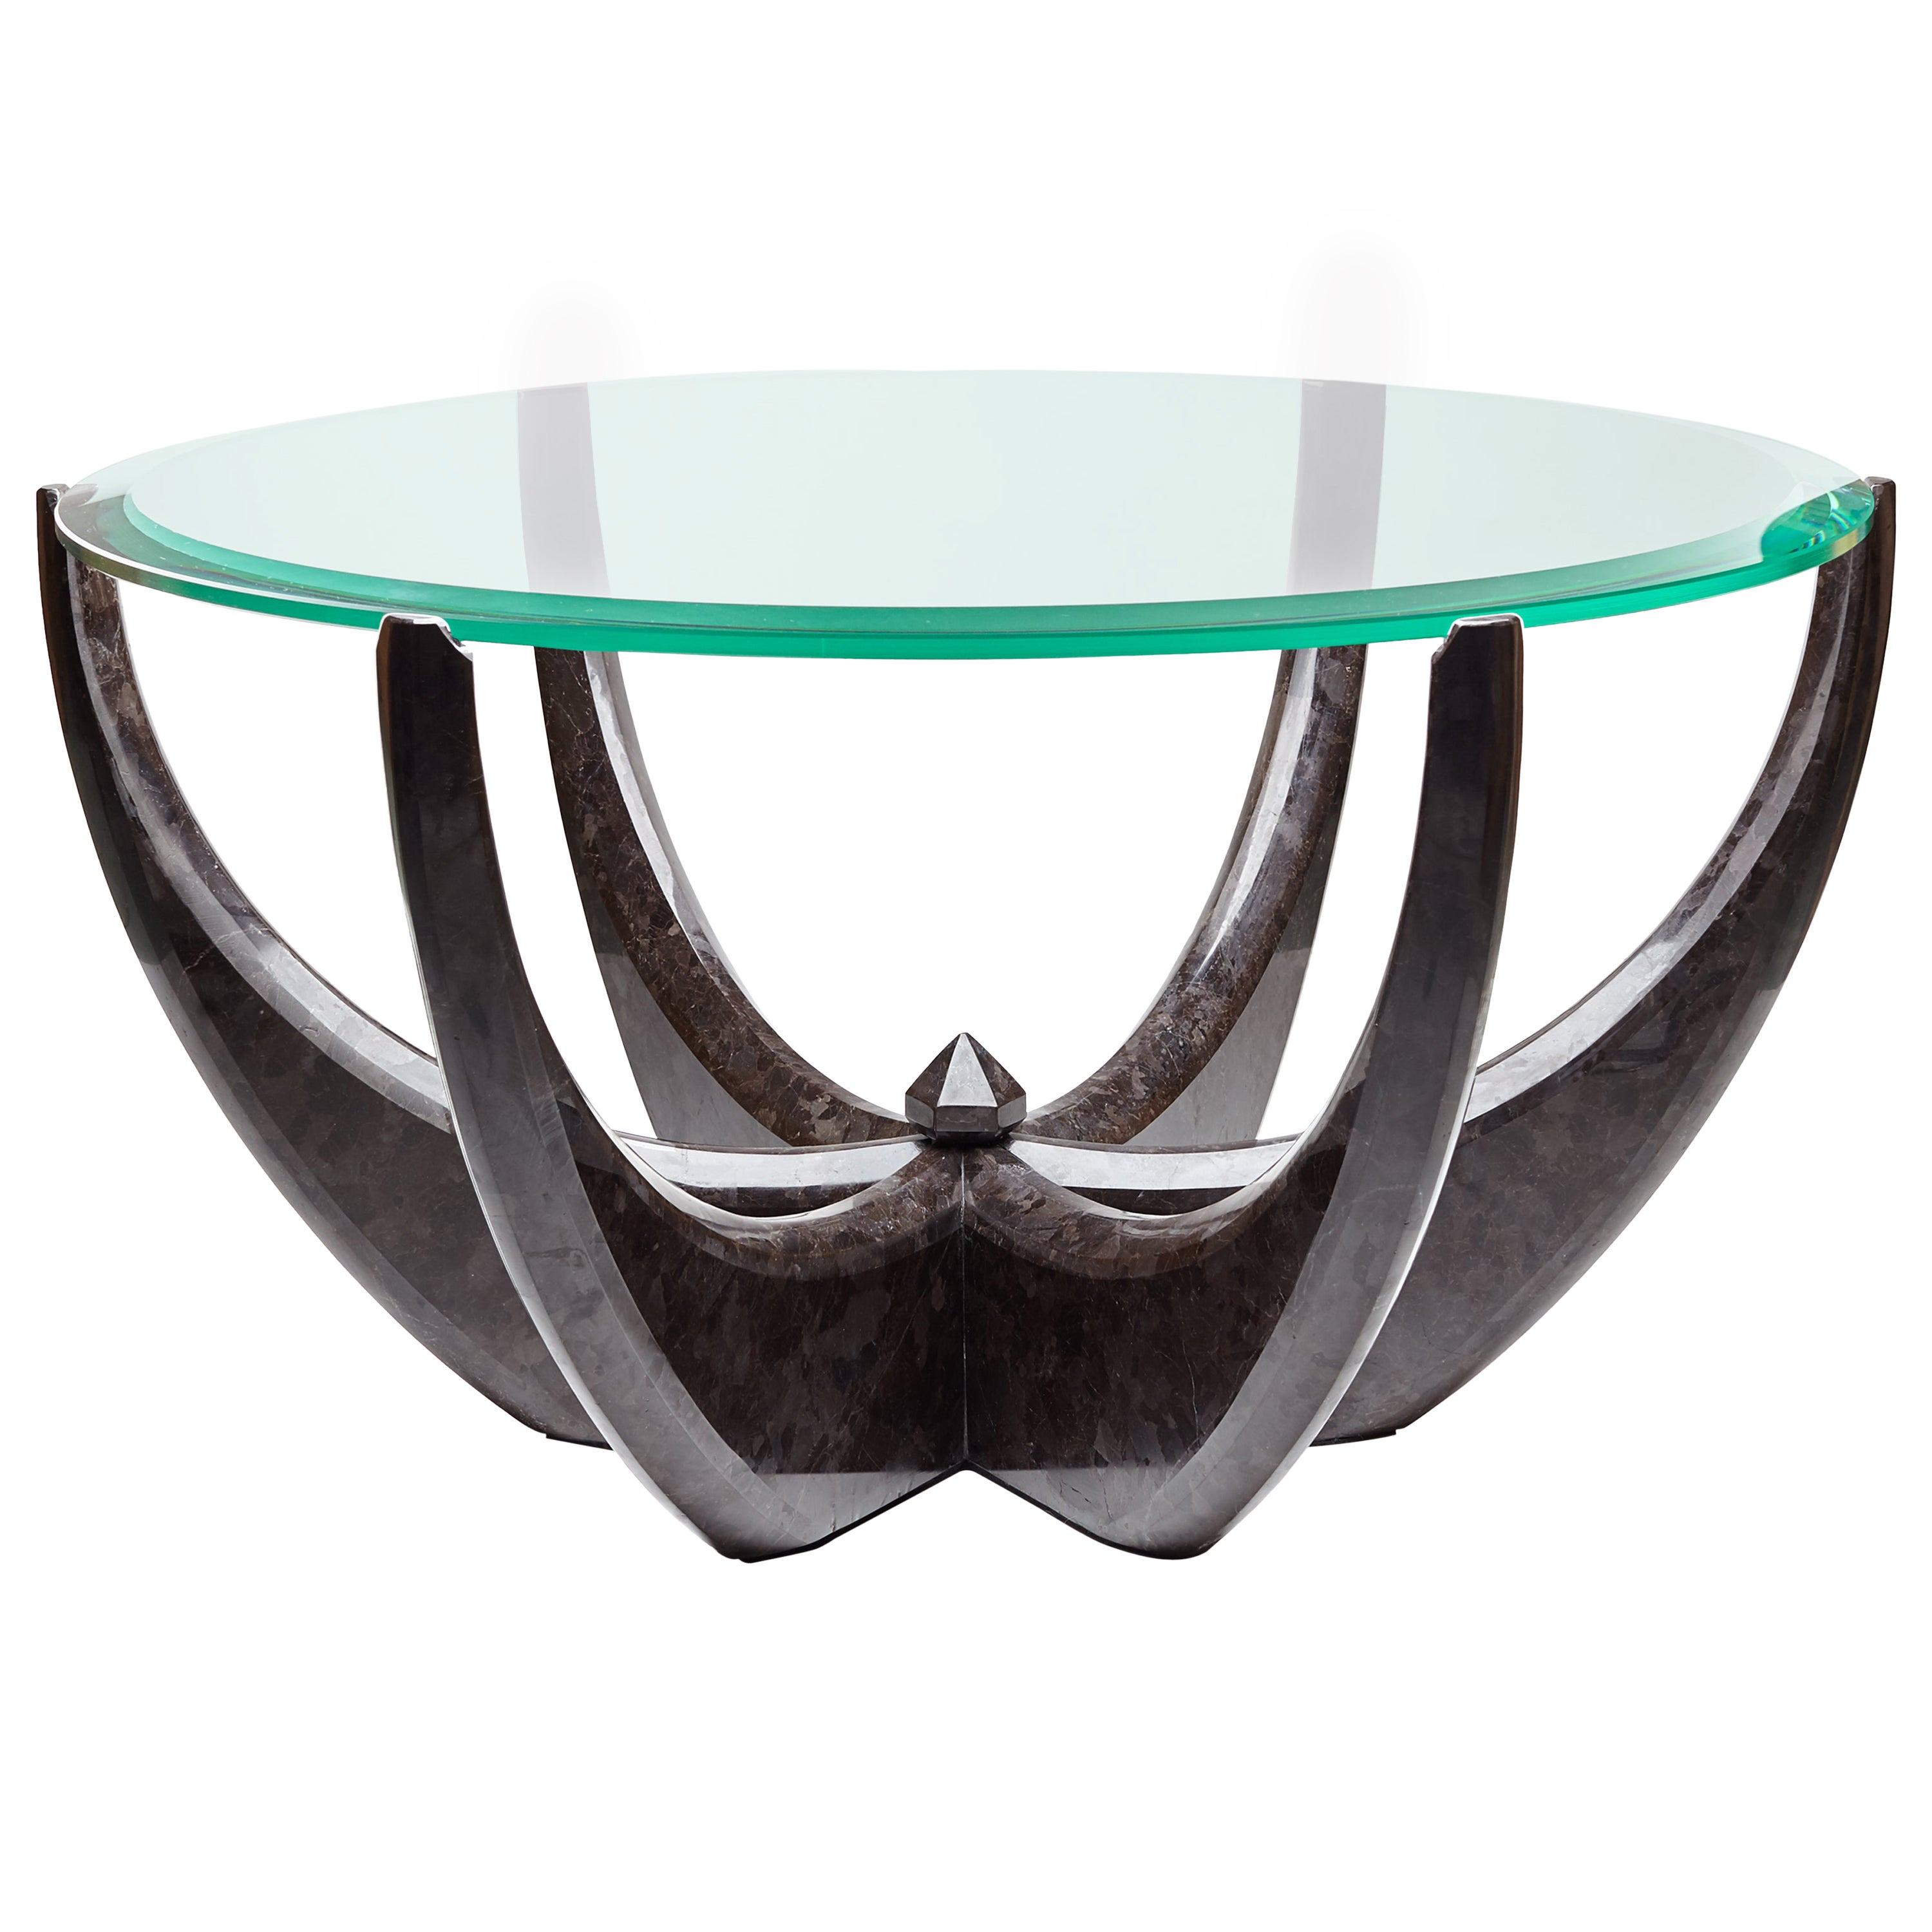 """The Diamond Ring"" Marble Coffee Table by Grzegorz Majka"